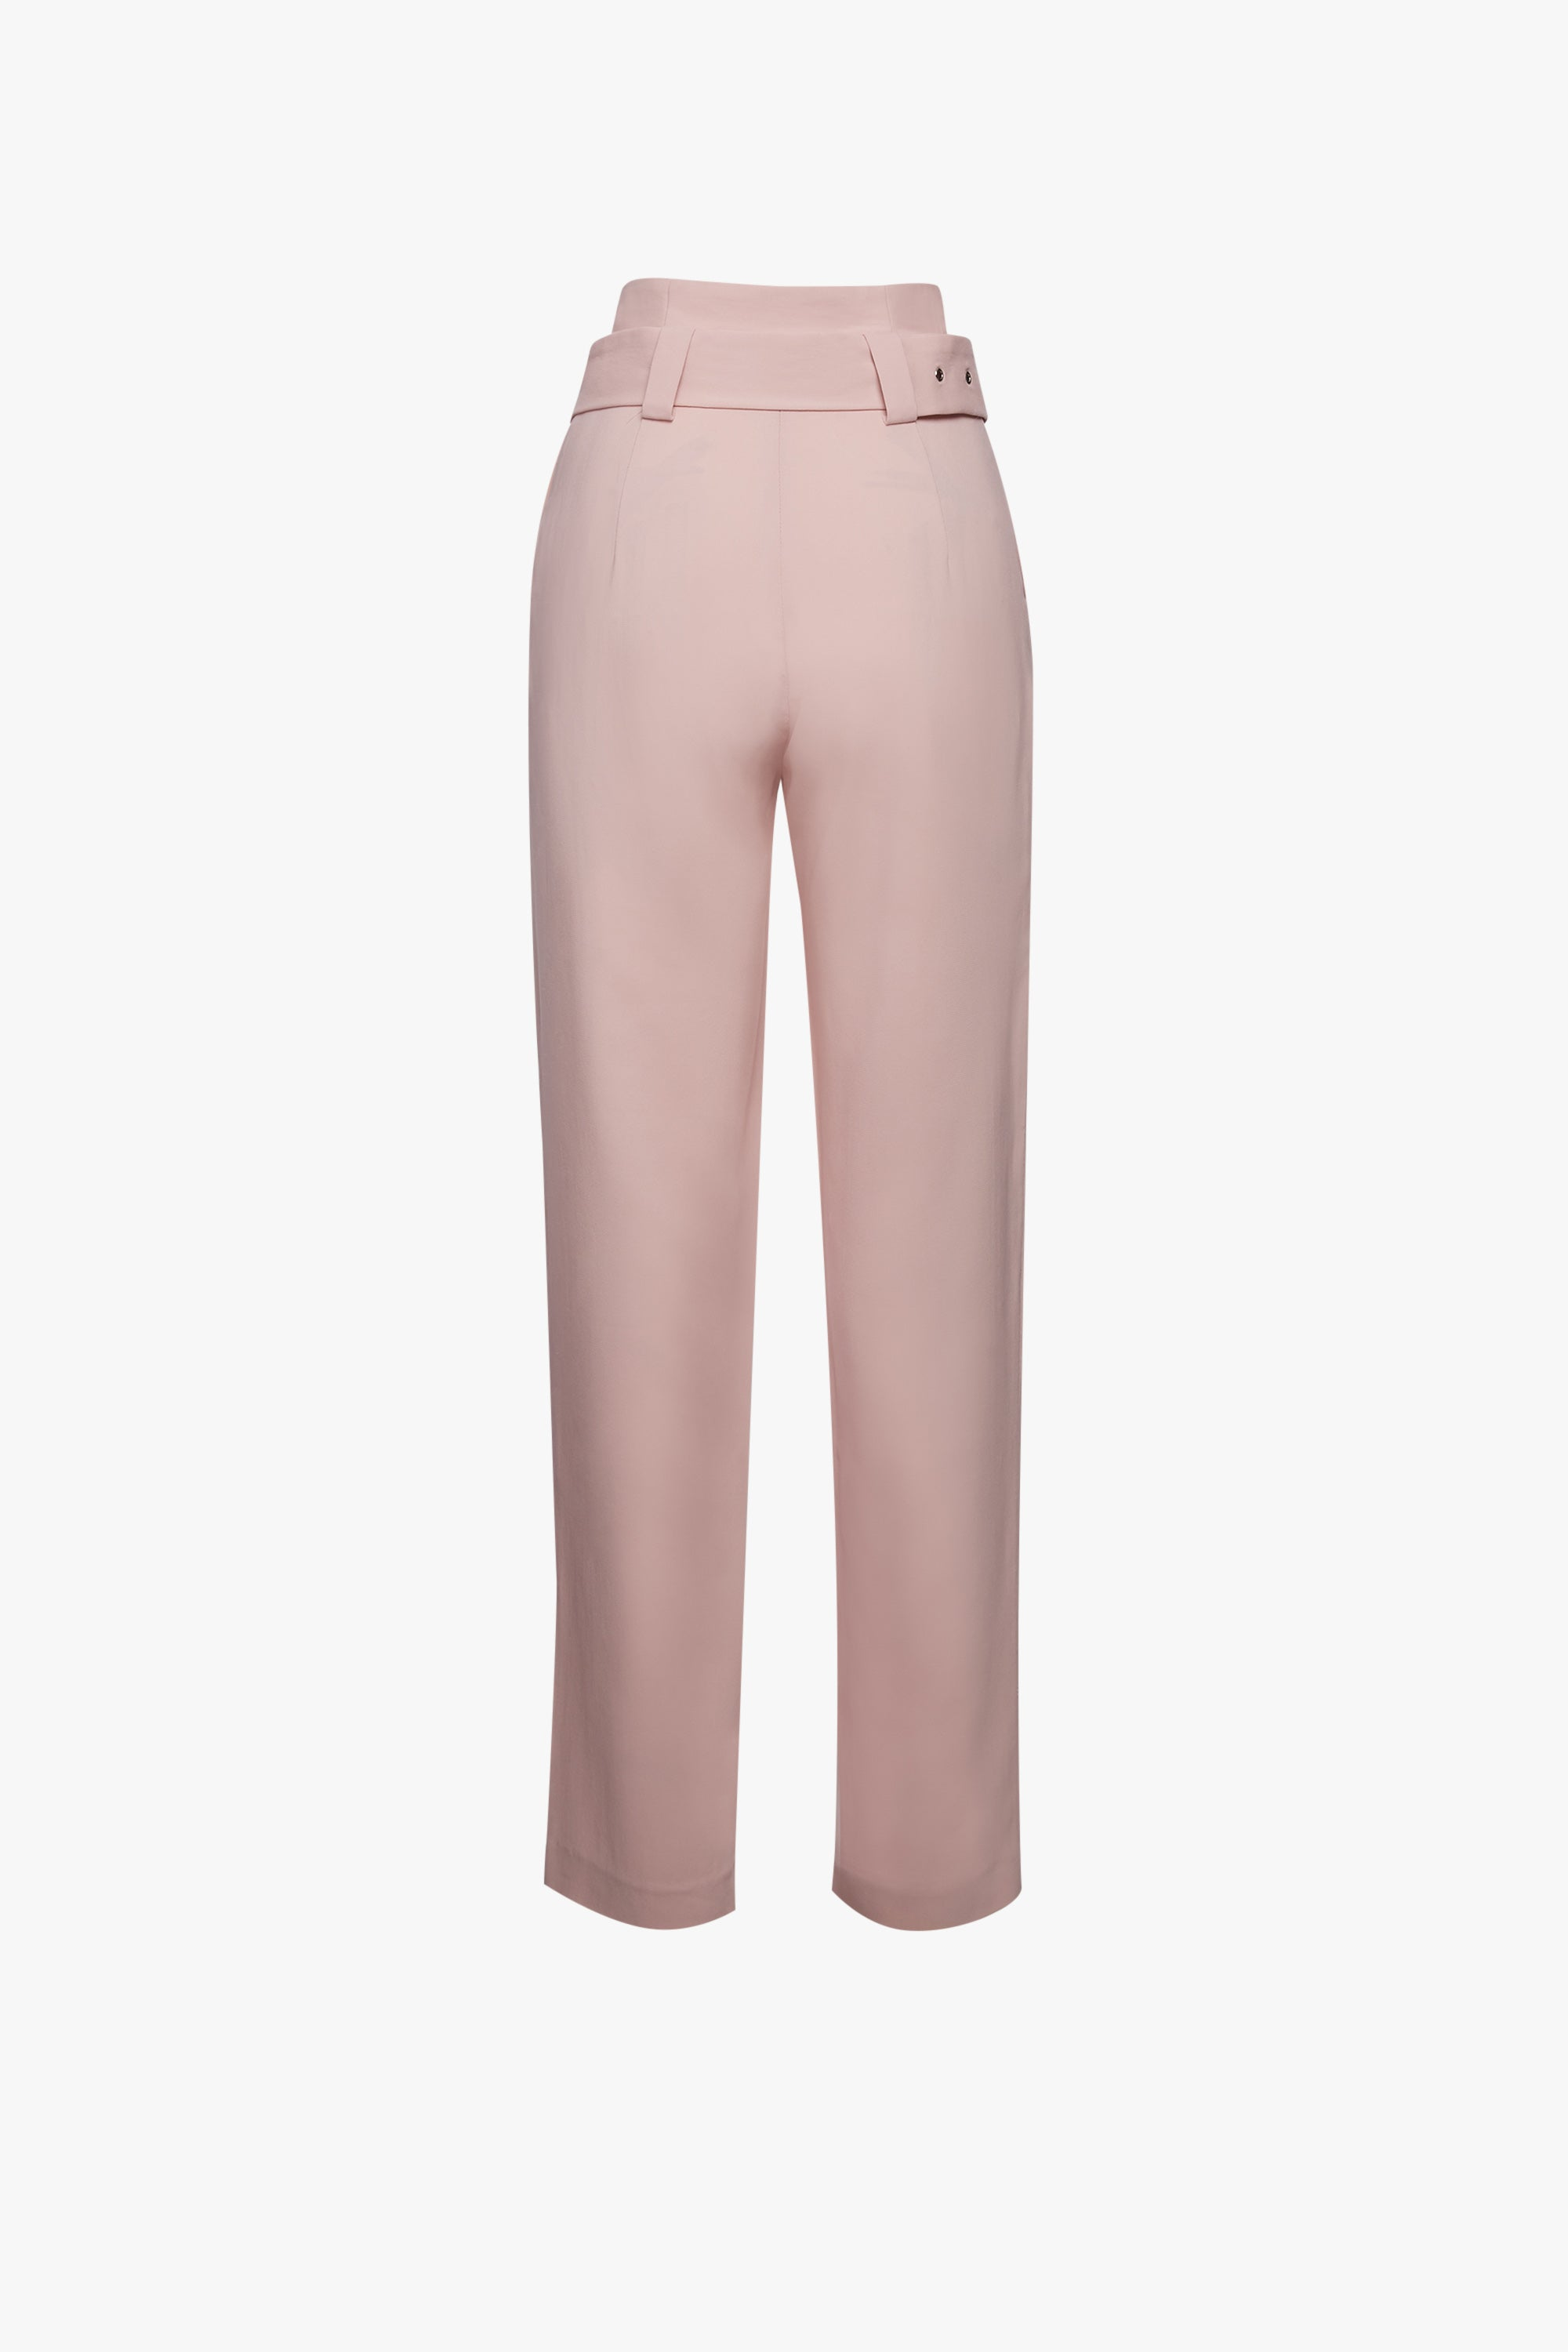 STRETCH VISCOSE CORSETED HIGH WAISTED PANT